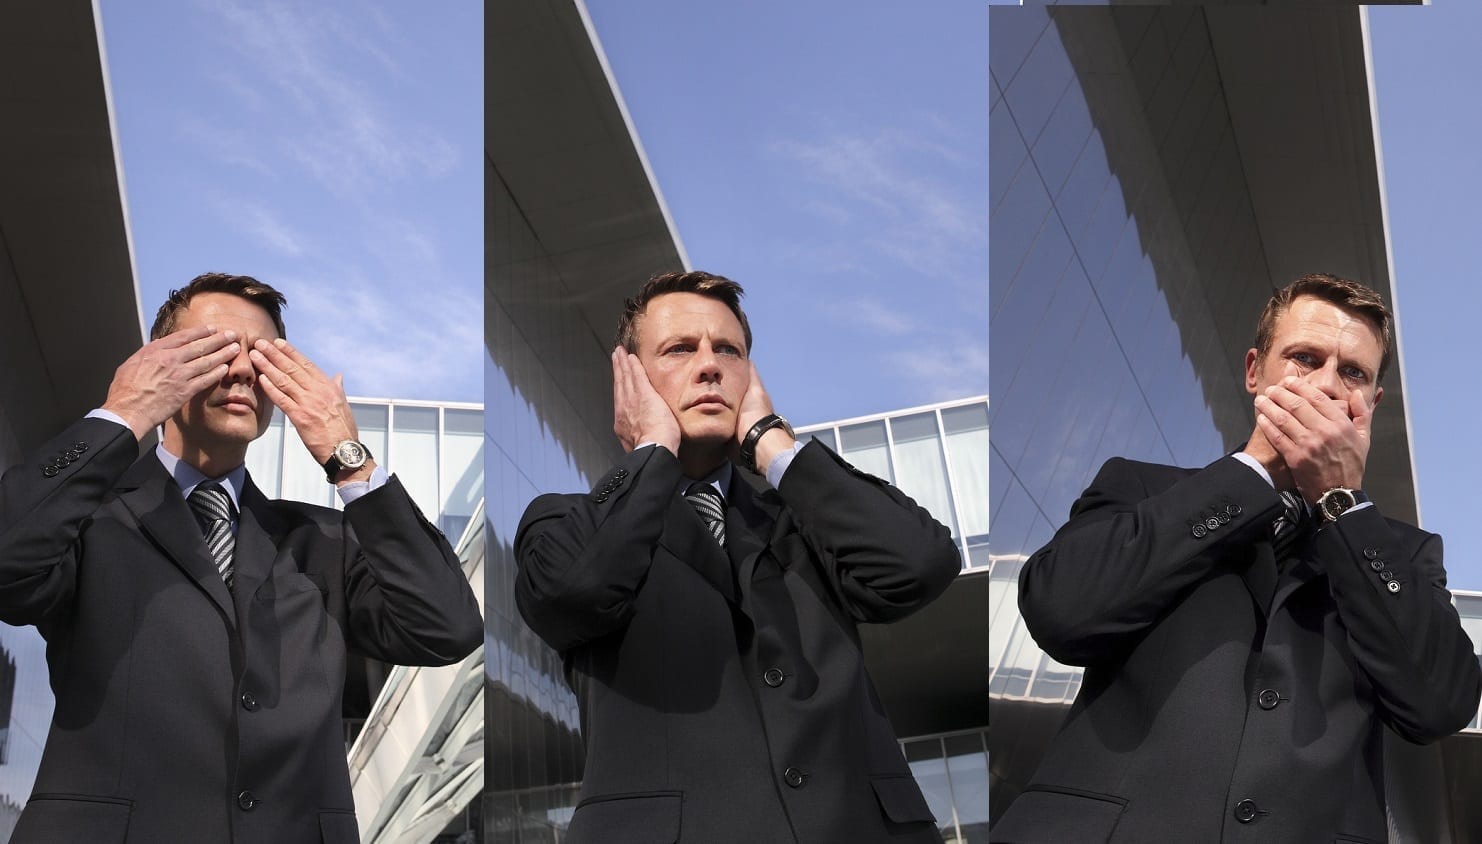 See no evil, hear no evil, speak no evil business man: ID 46305609 © Visivasnc | Dreamstime.com